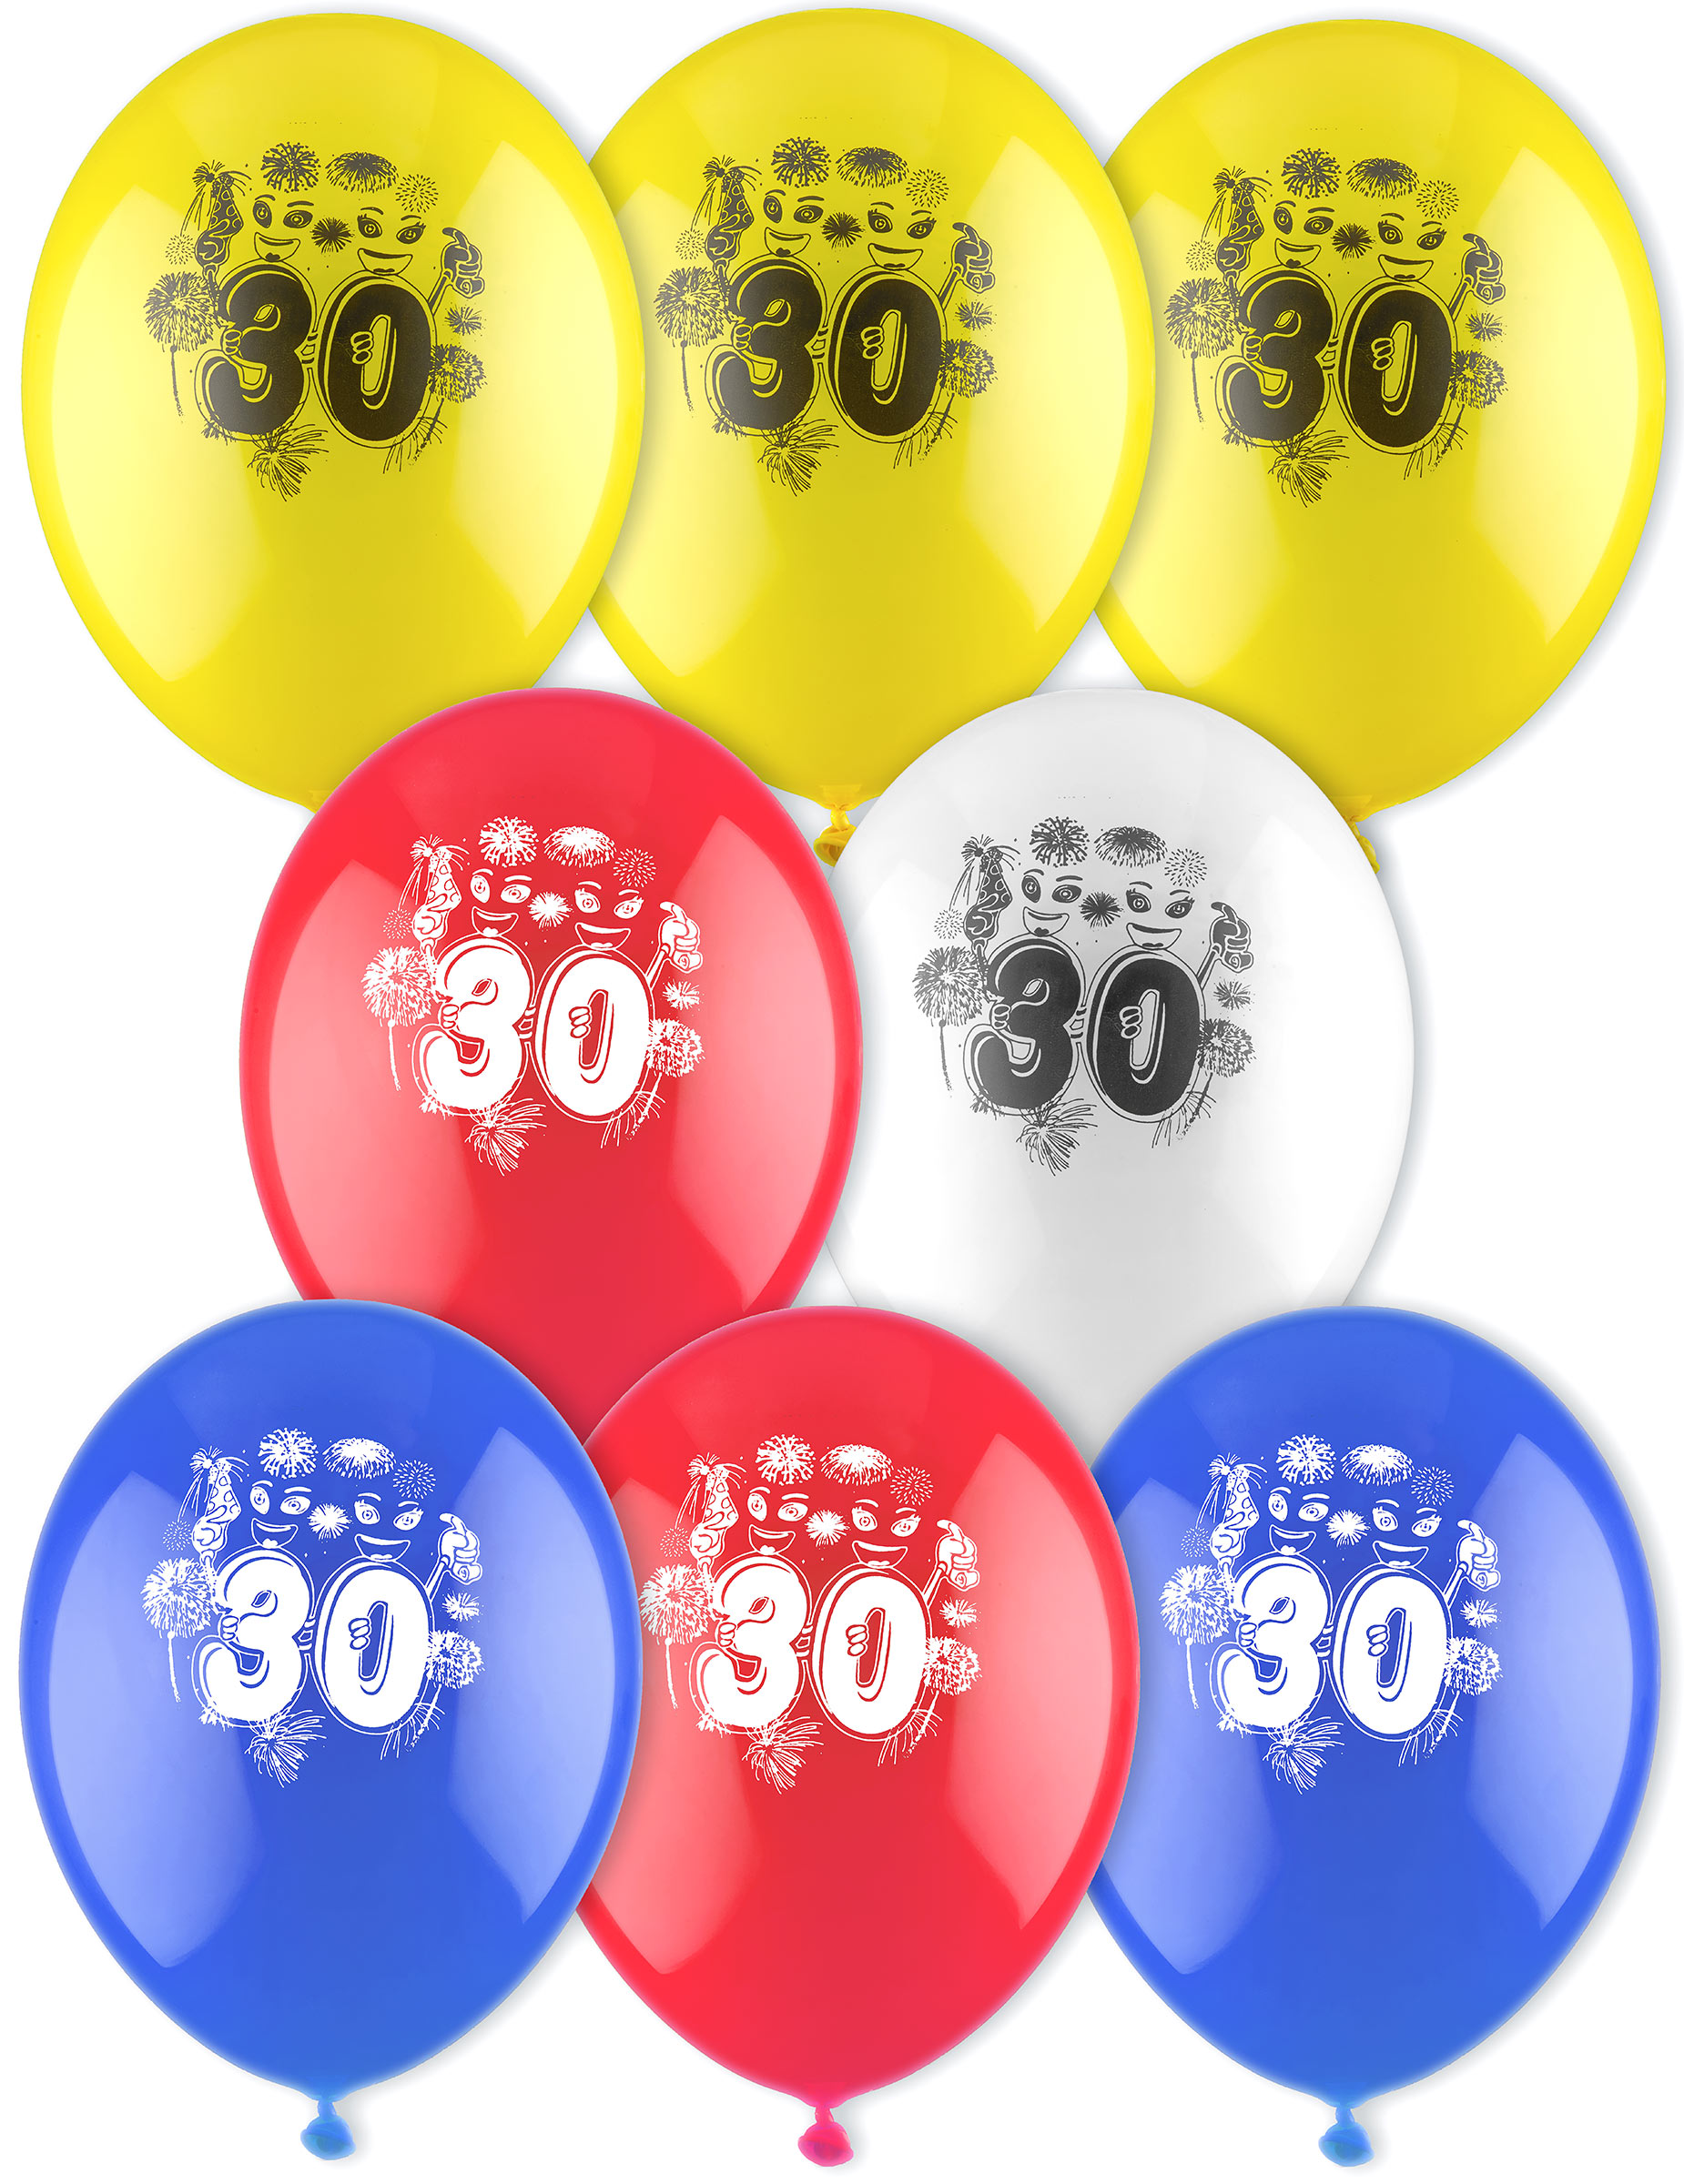 8 ballons d 39 anniversaire 30 ans achat de decoration animation sur vegaoopro grossiste en. Black Bedroom Furniture Sets. Home Design Ideas